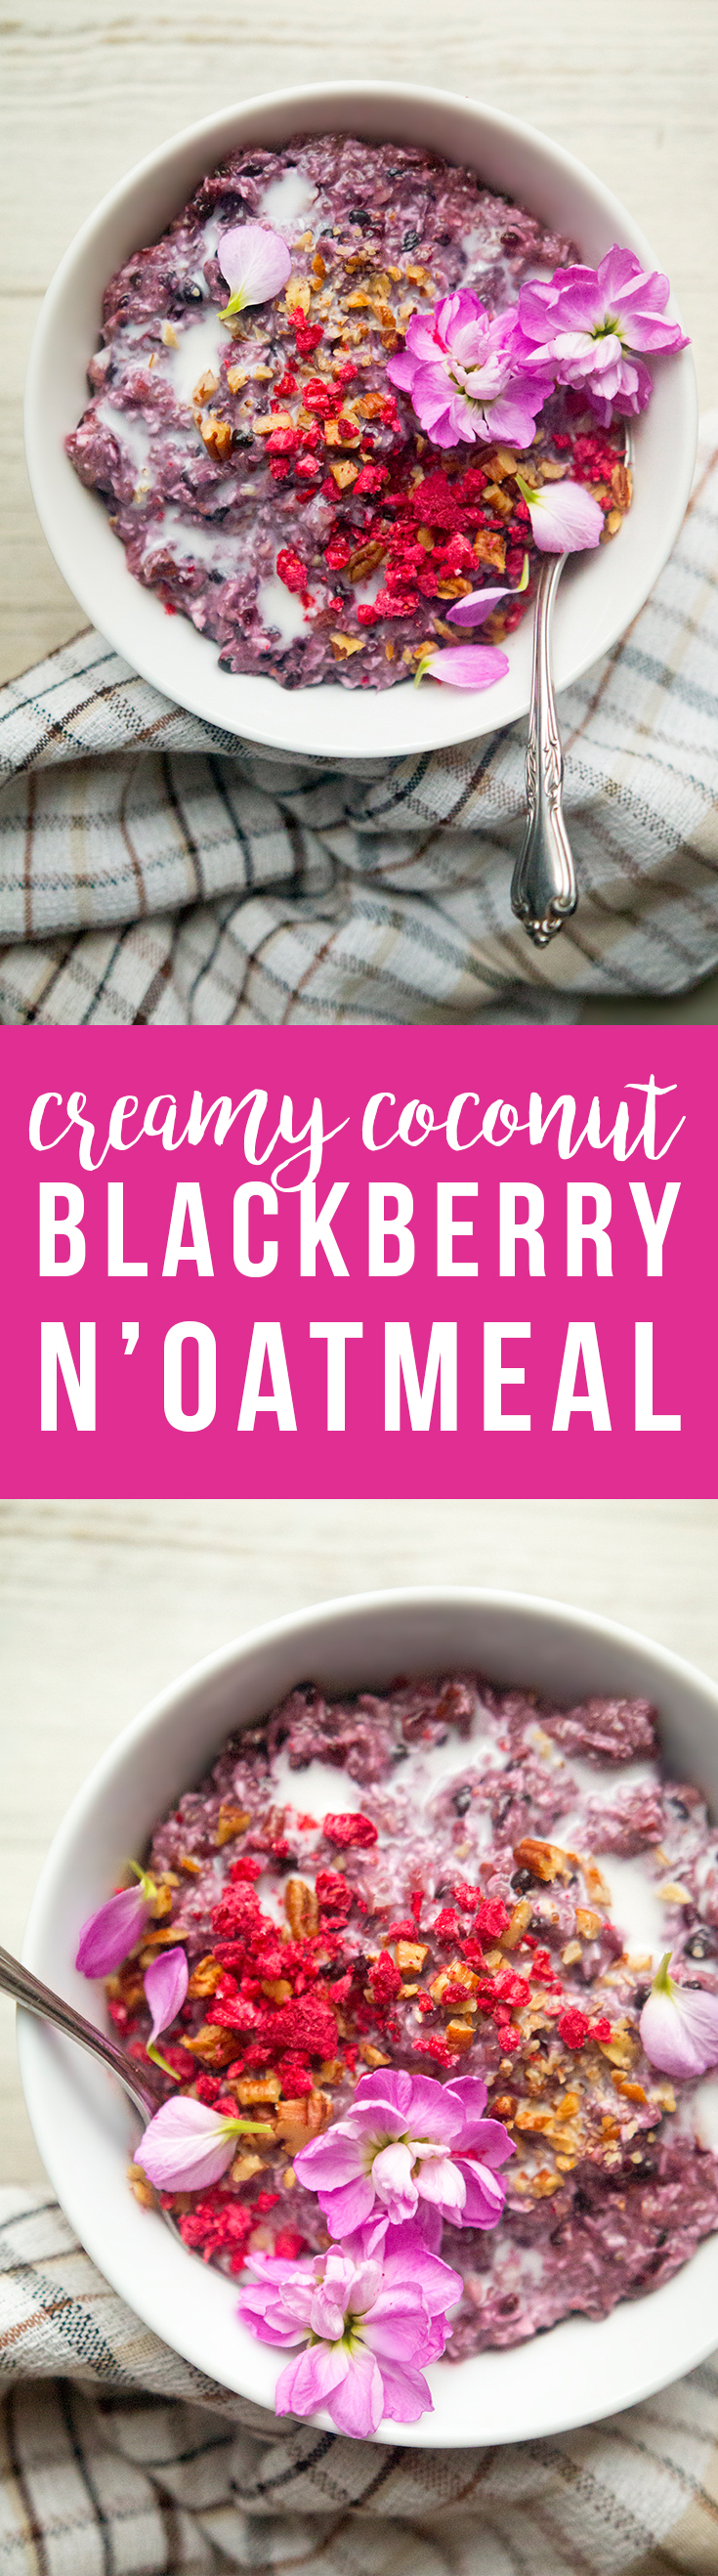 Creamy Coconut Blackberry N'Oatmeal: besides being quick and easy to make, I love this because it's low-sugar, low-carb, filling, and a beautiful blackberry color.